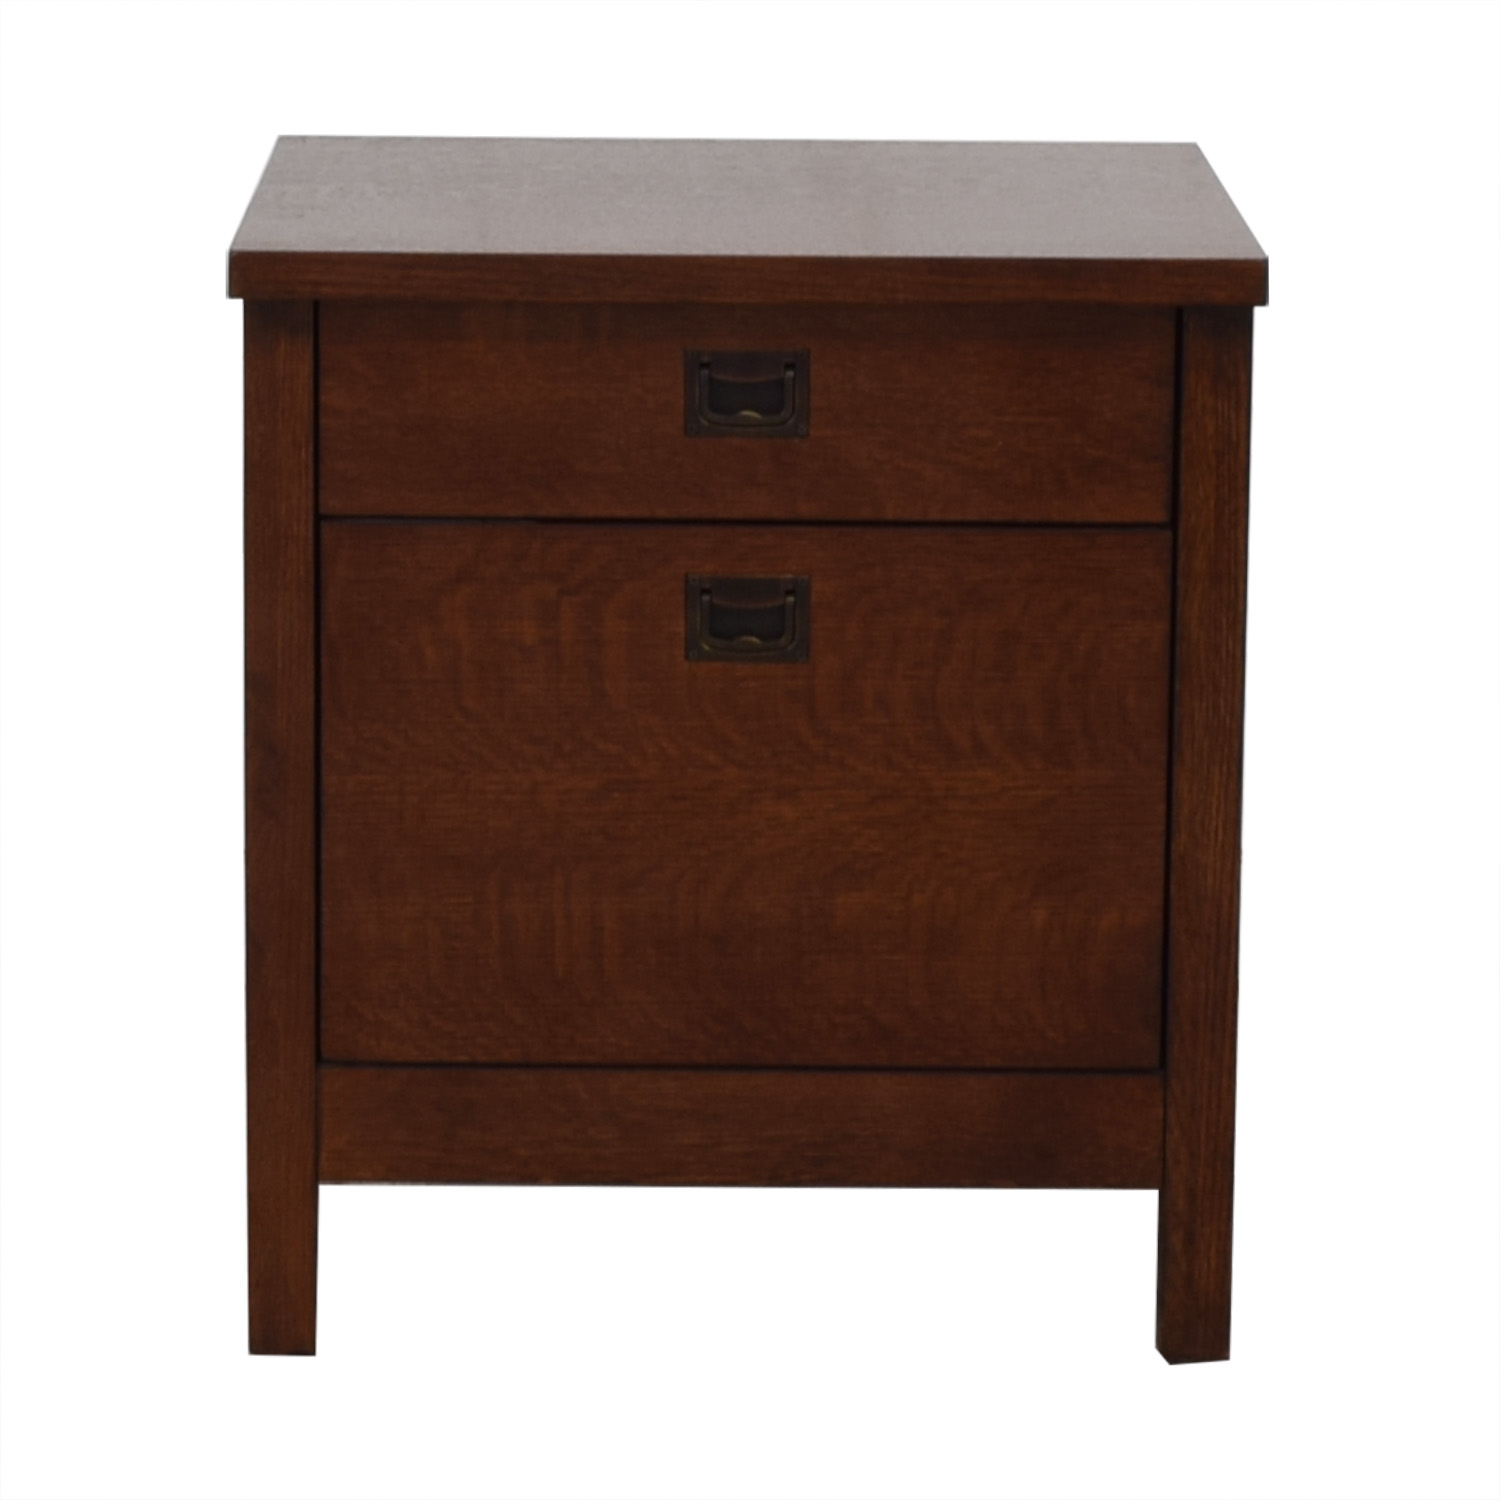 Crate & Barrel Mission Oak File Cabinet sale